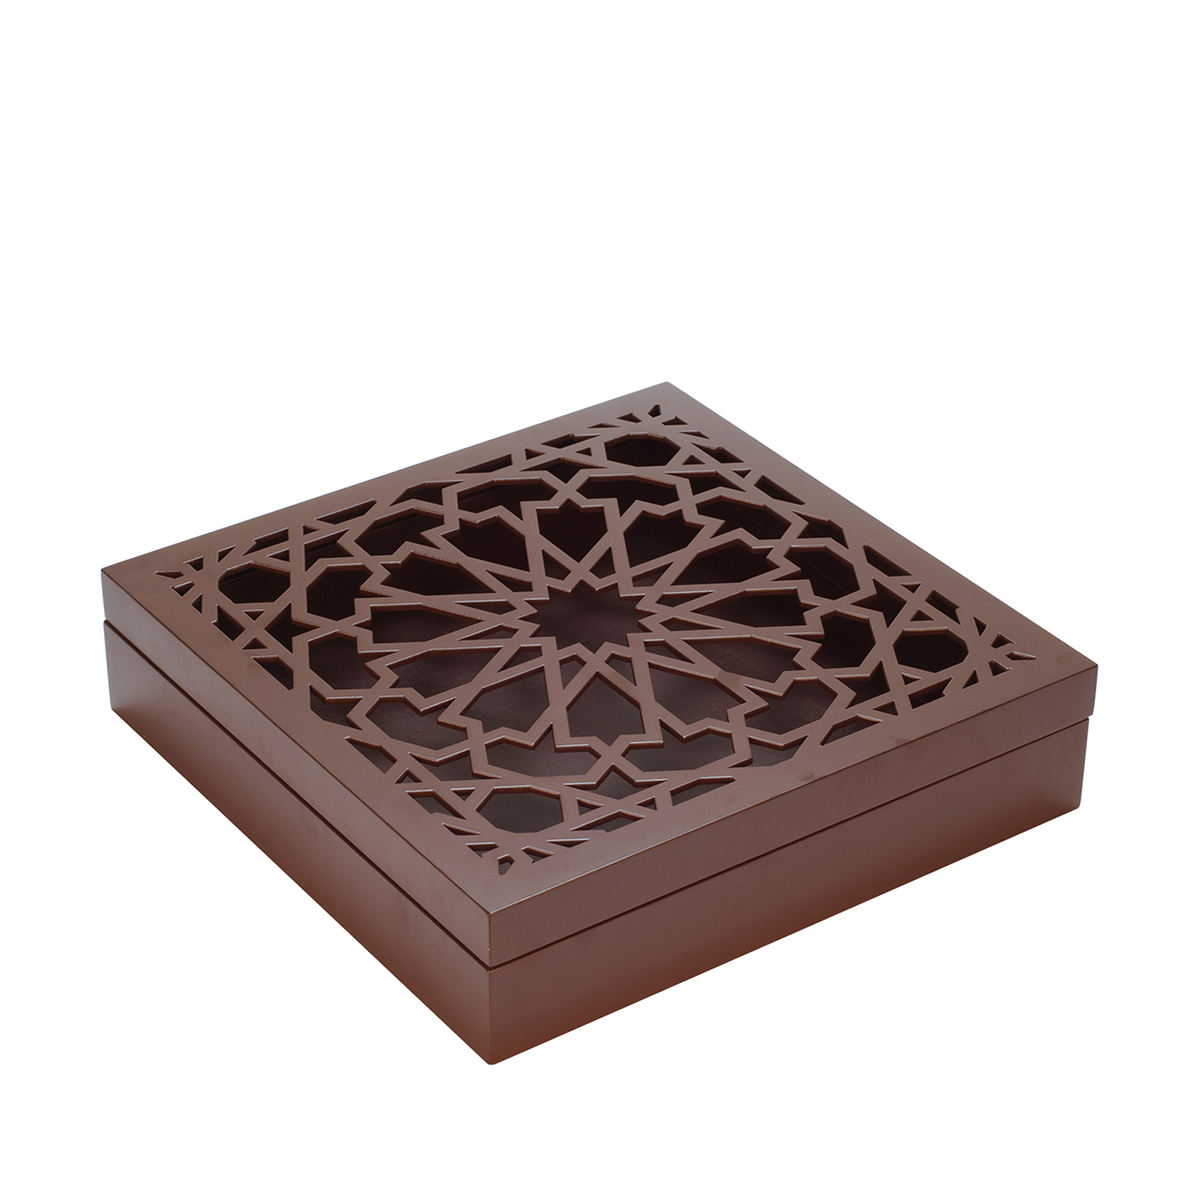 New design gift box wood brown/black/brown/white storage carved/engraving box luxury chocolate box